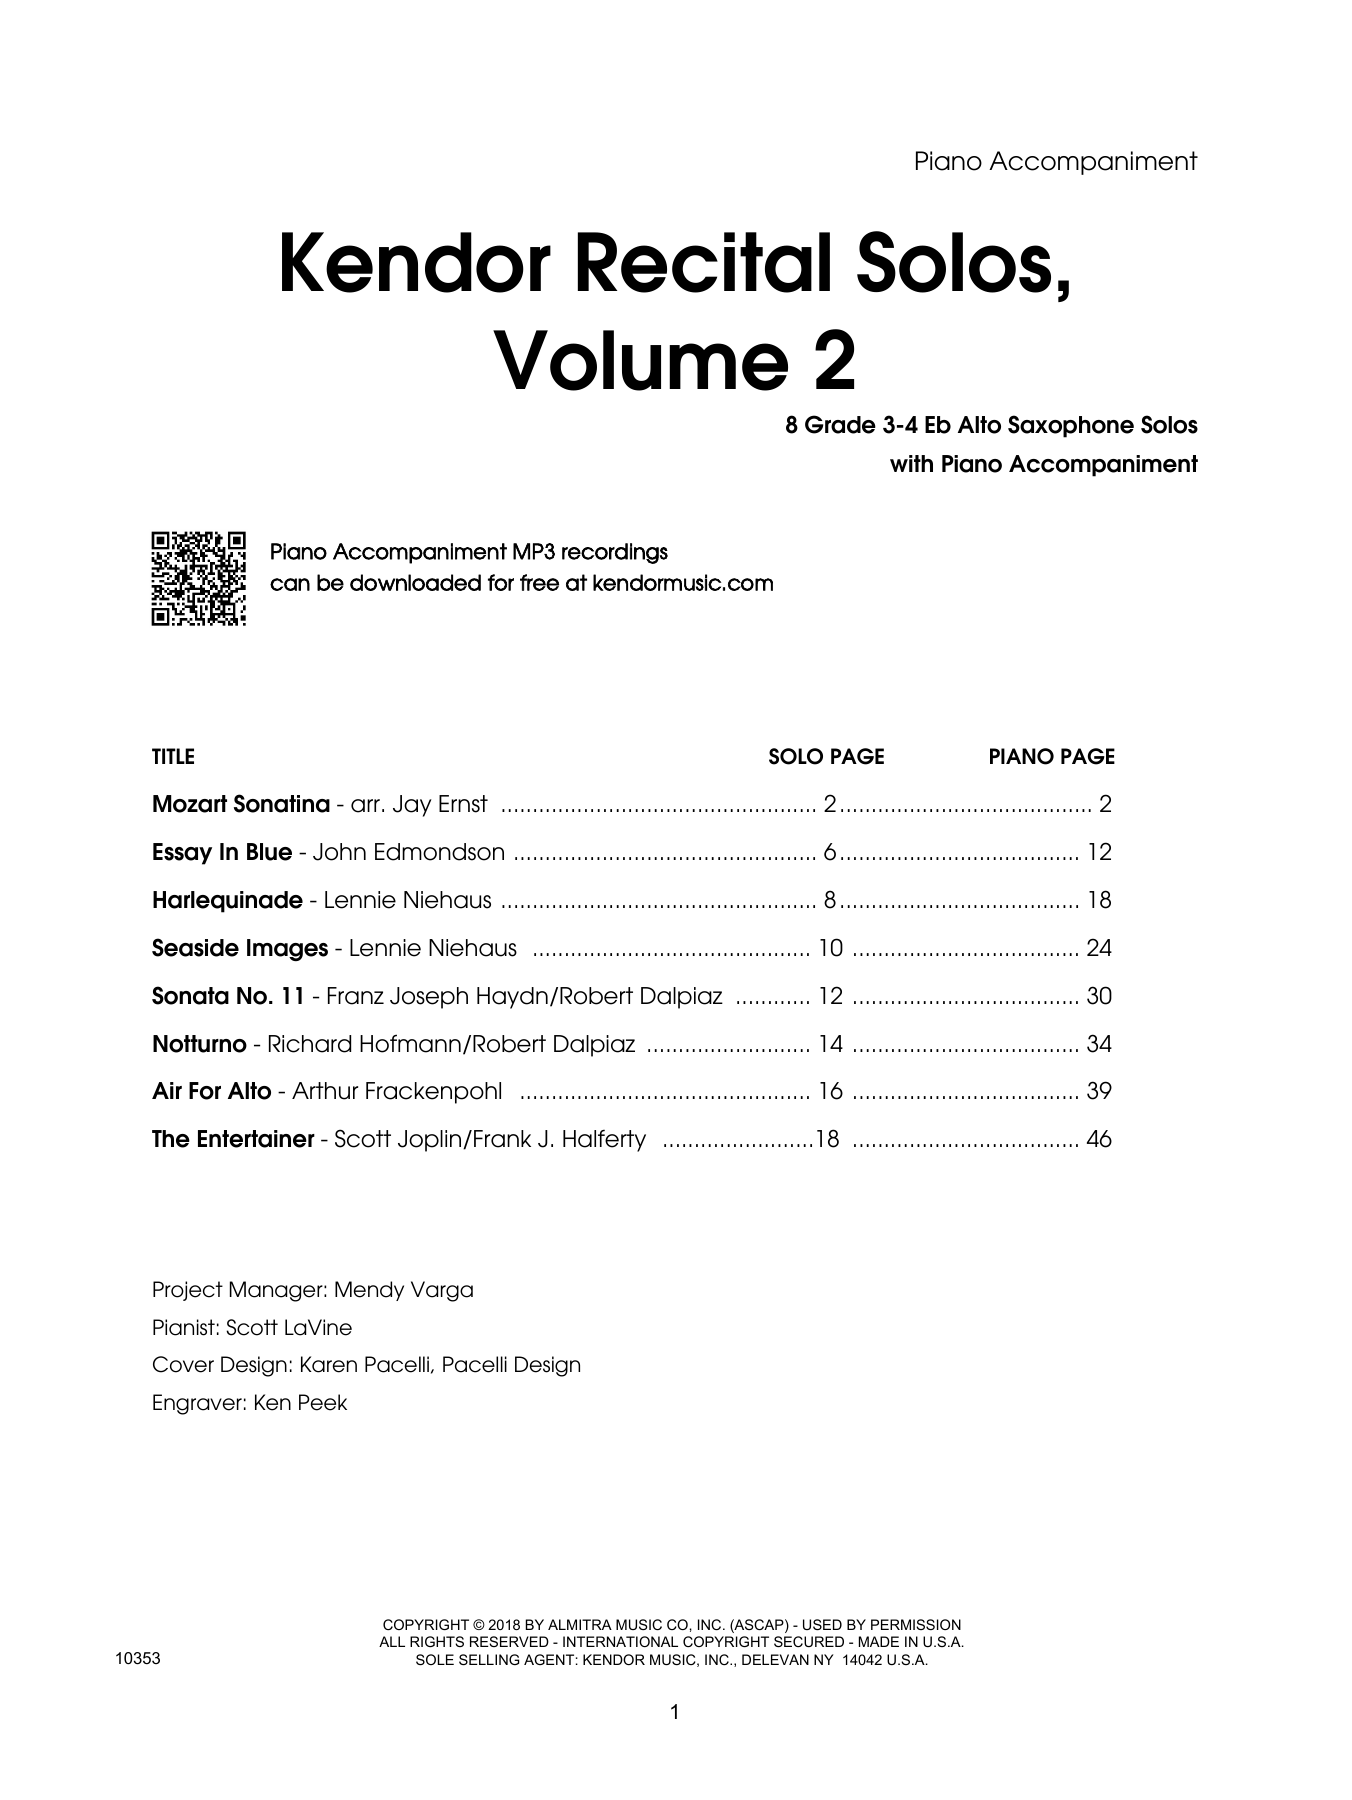 Kendor Recital Solos, Volume 2 - Piano Accompaniment Digitale Noten